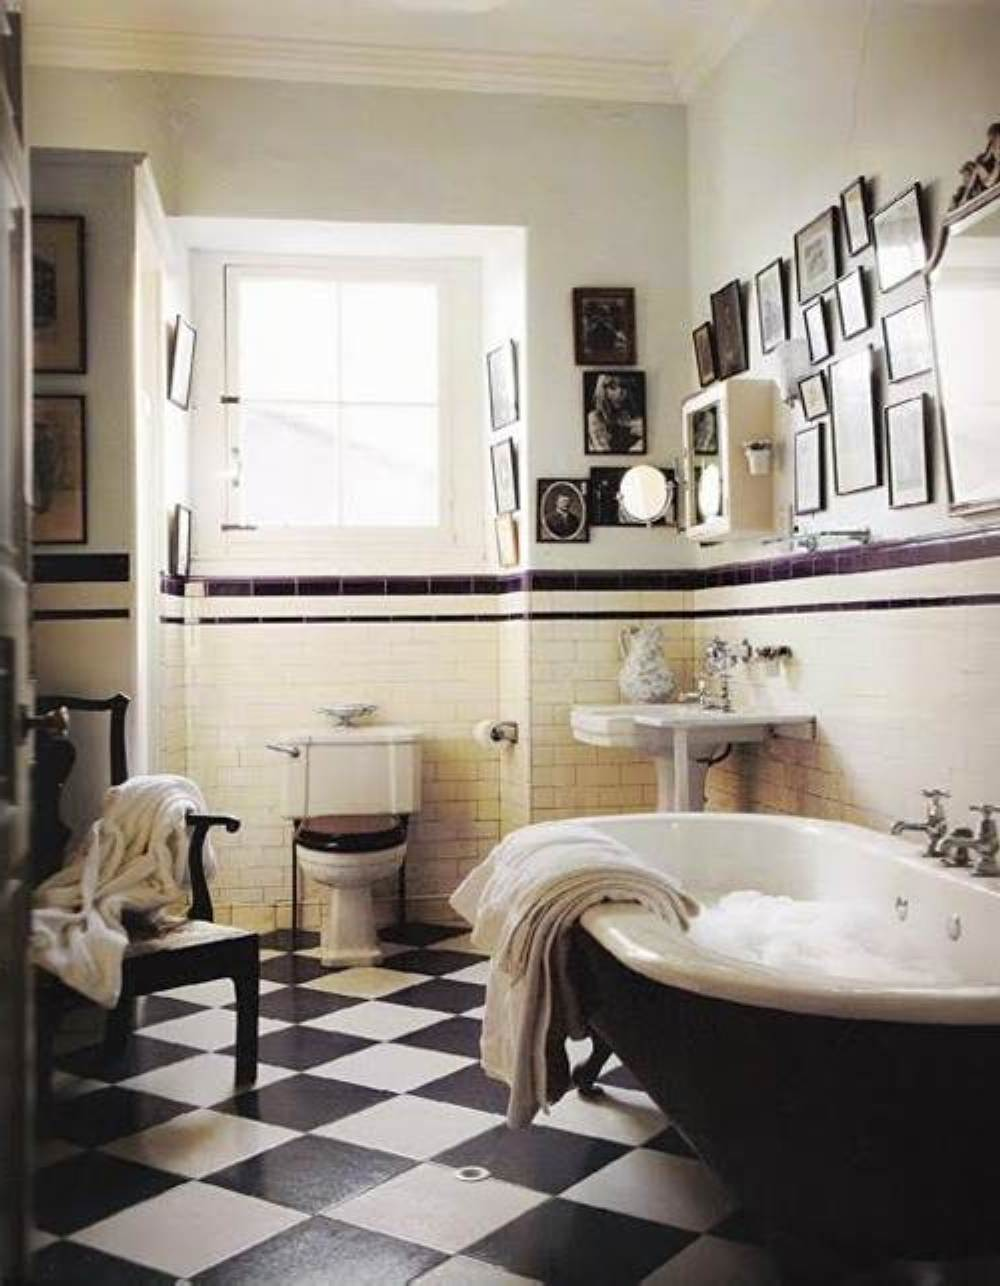 Black and white art deco bathroom - Great Pictures And Ideas Art Nouveau Bathroom Tiles Art Deco Bathroom 30 Great Pictures And